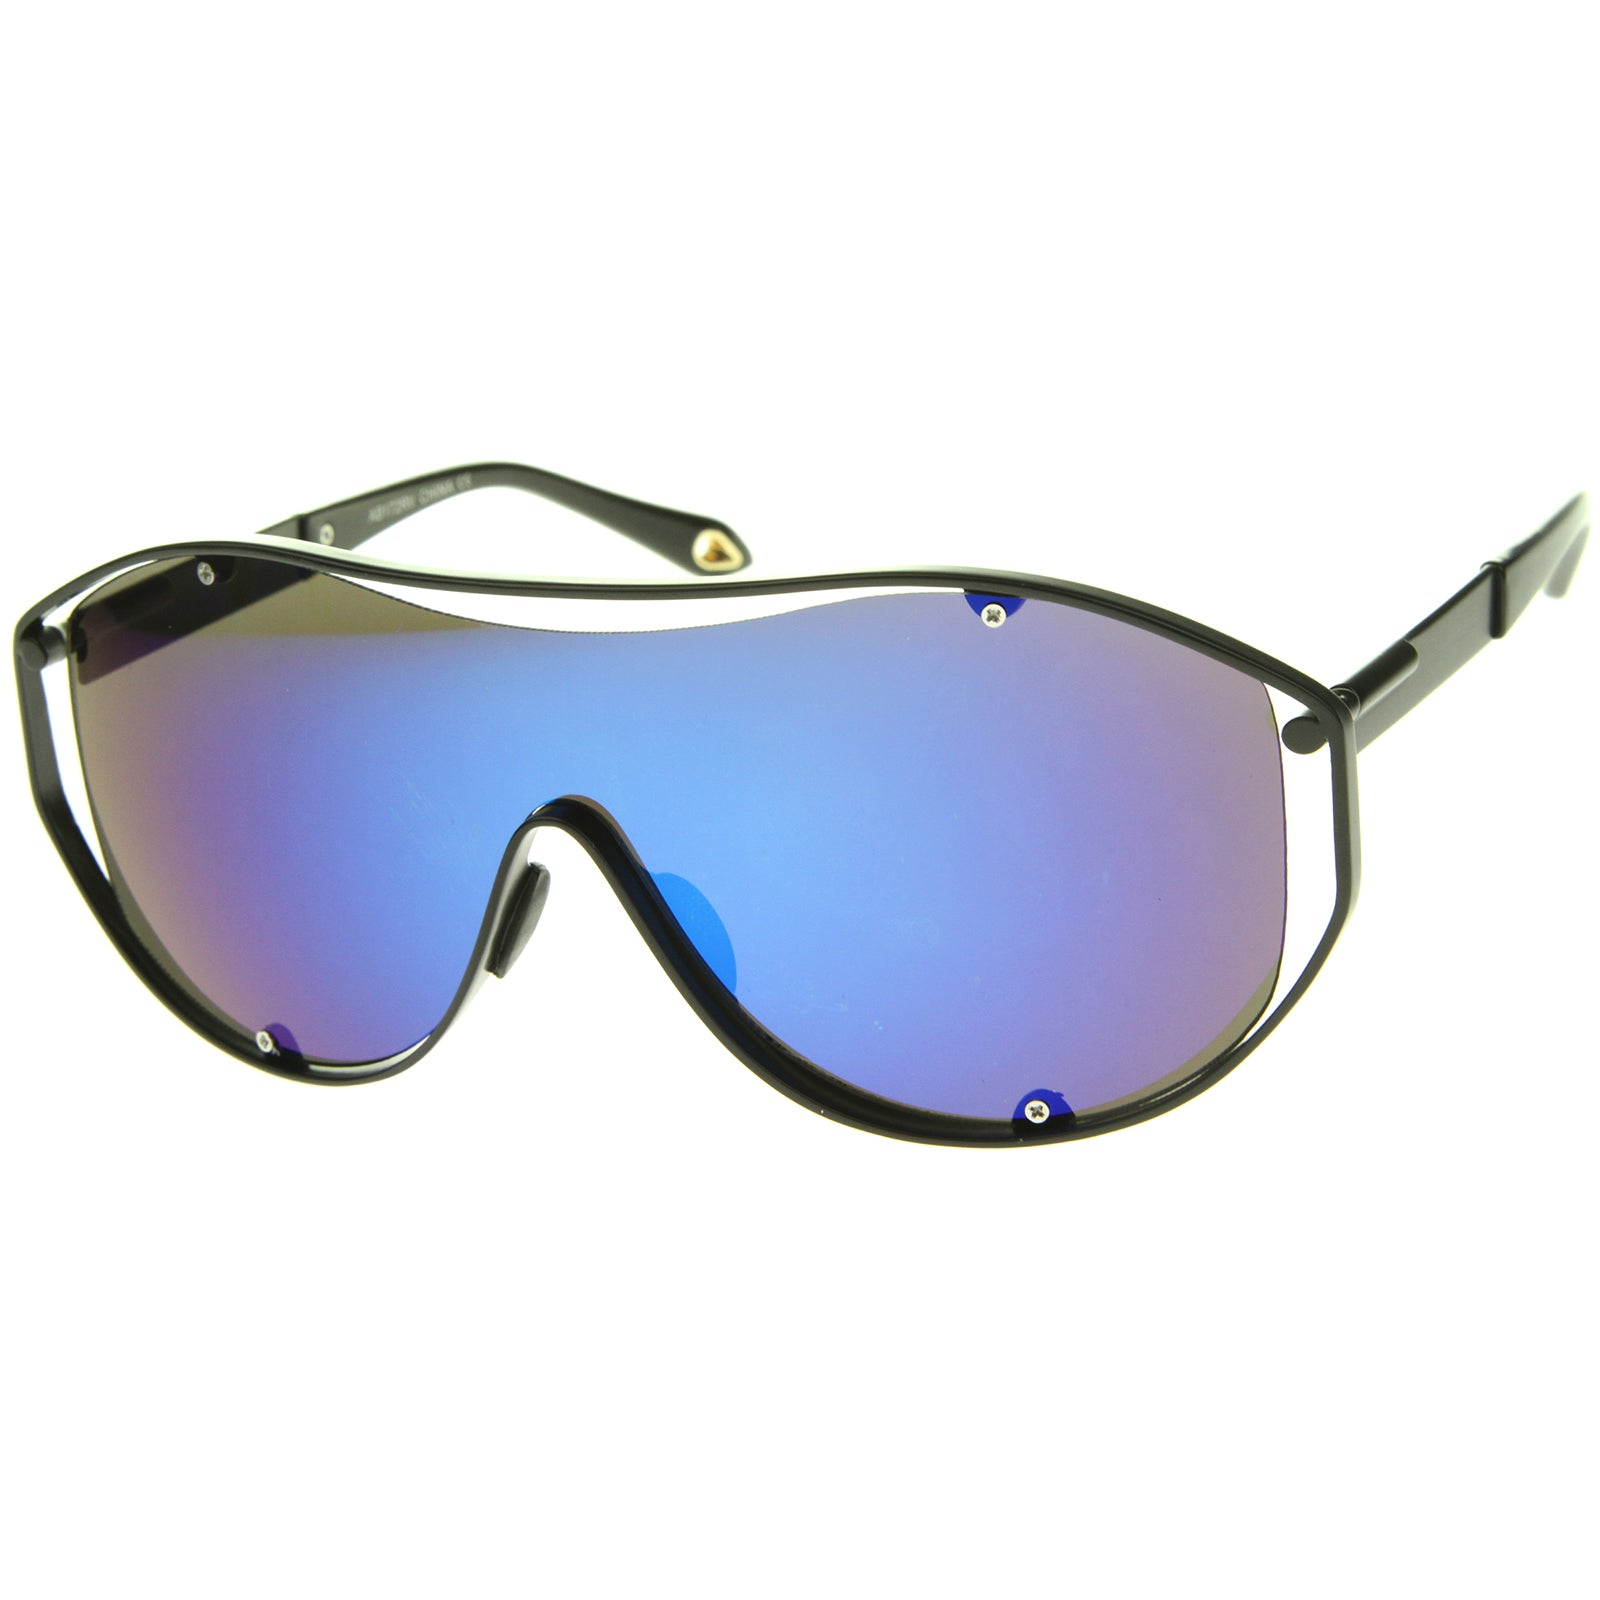 Modern Fashion Metal Frame Inner Rimless Mirror Lens Shield Sunglasses - sunglass.la - 10